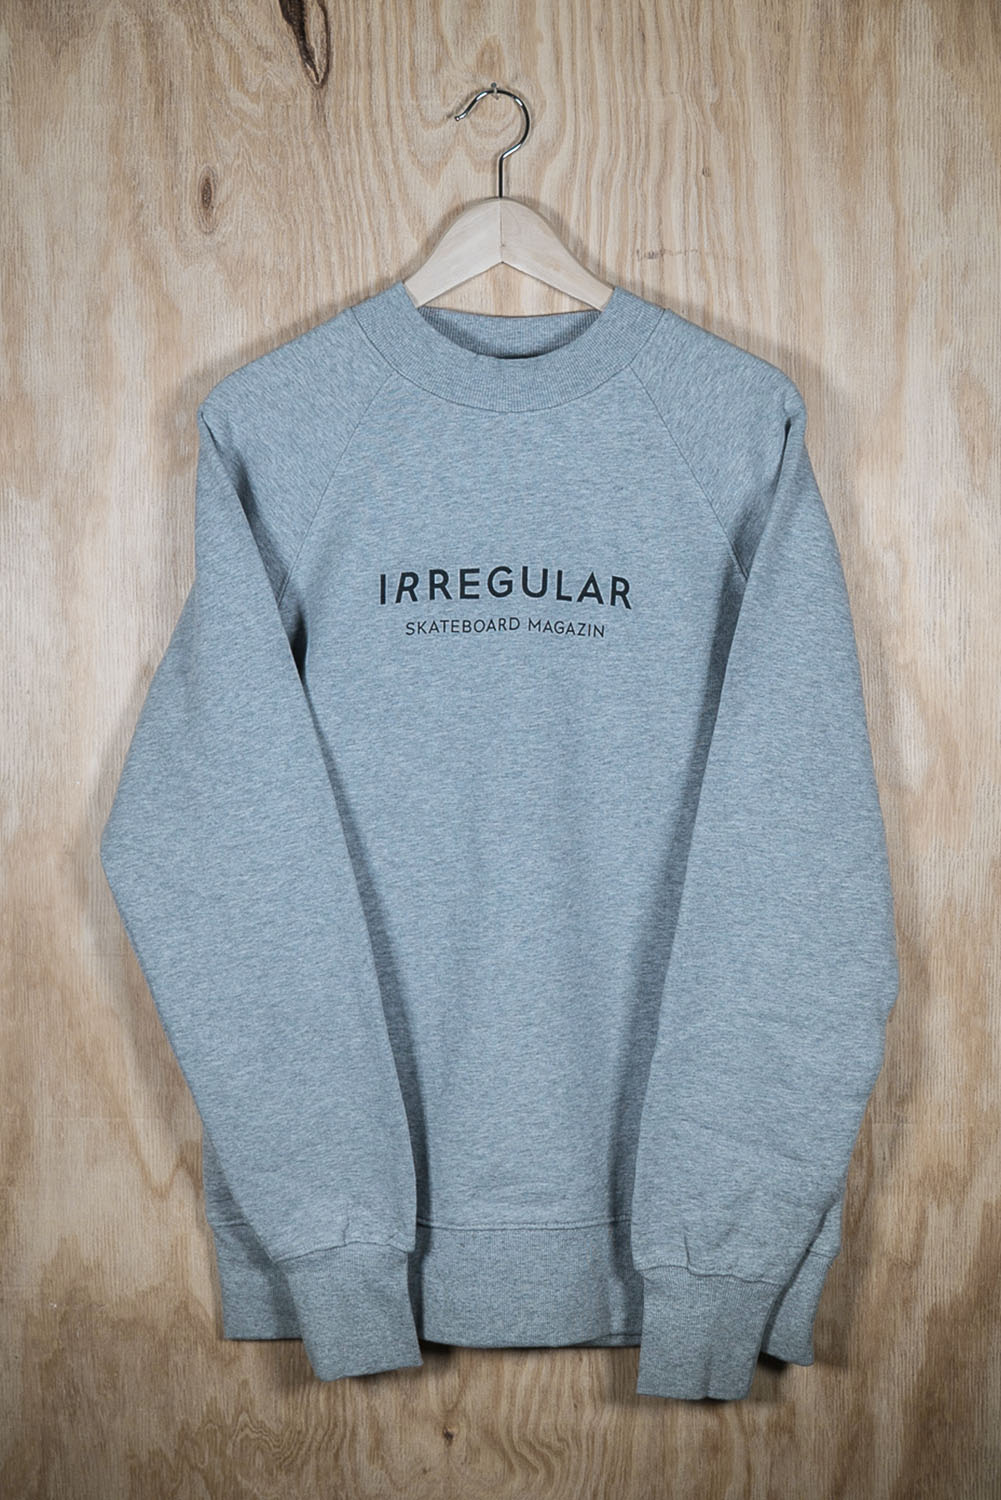 Irregularskatemag-new-logo-sweatshirt-grey